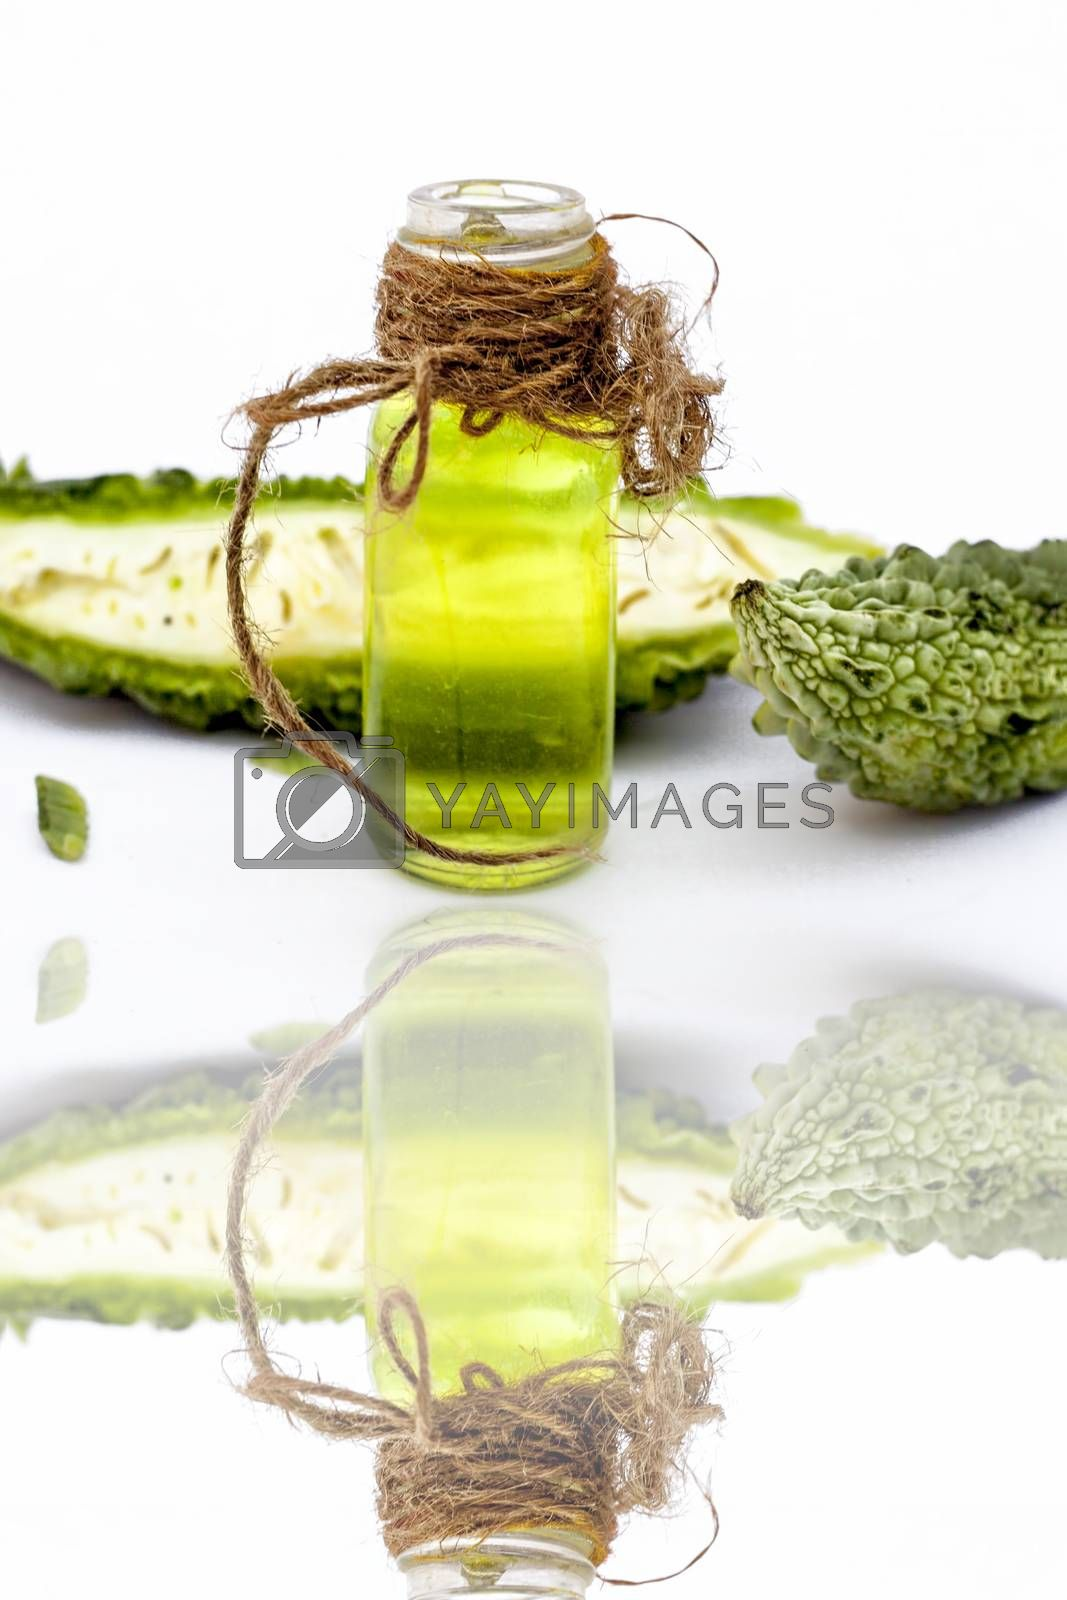 Raw organic bitter melon or Bitter Cucumber or Bitter Gourd isolated on white along with its detoxifying essential oil in a transparent glass bottle,with its reflection.